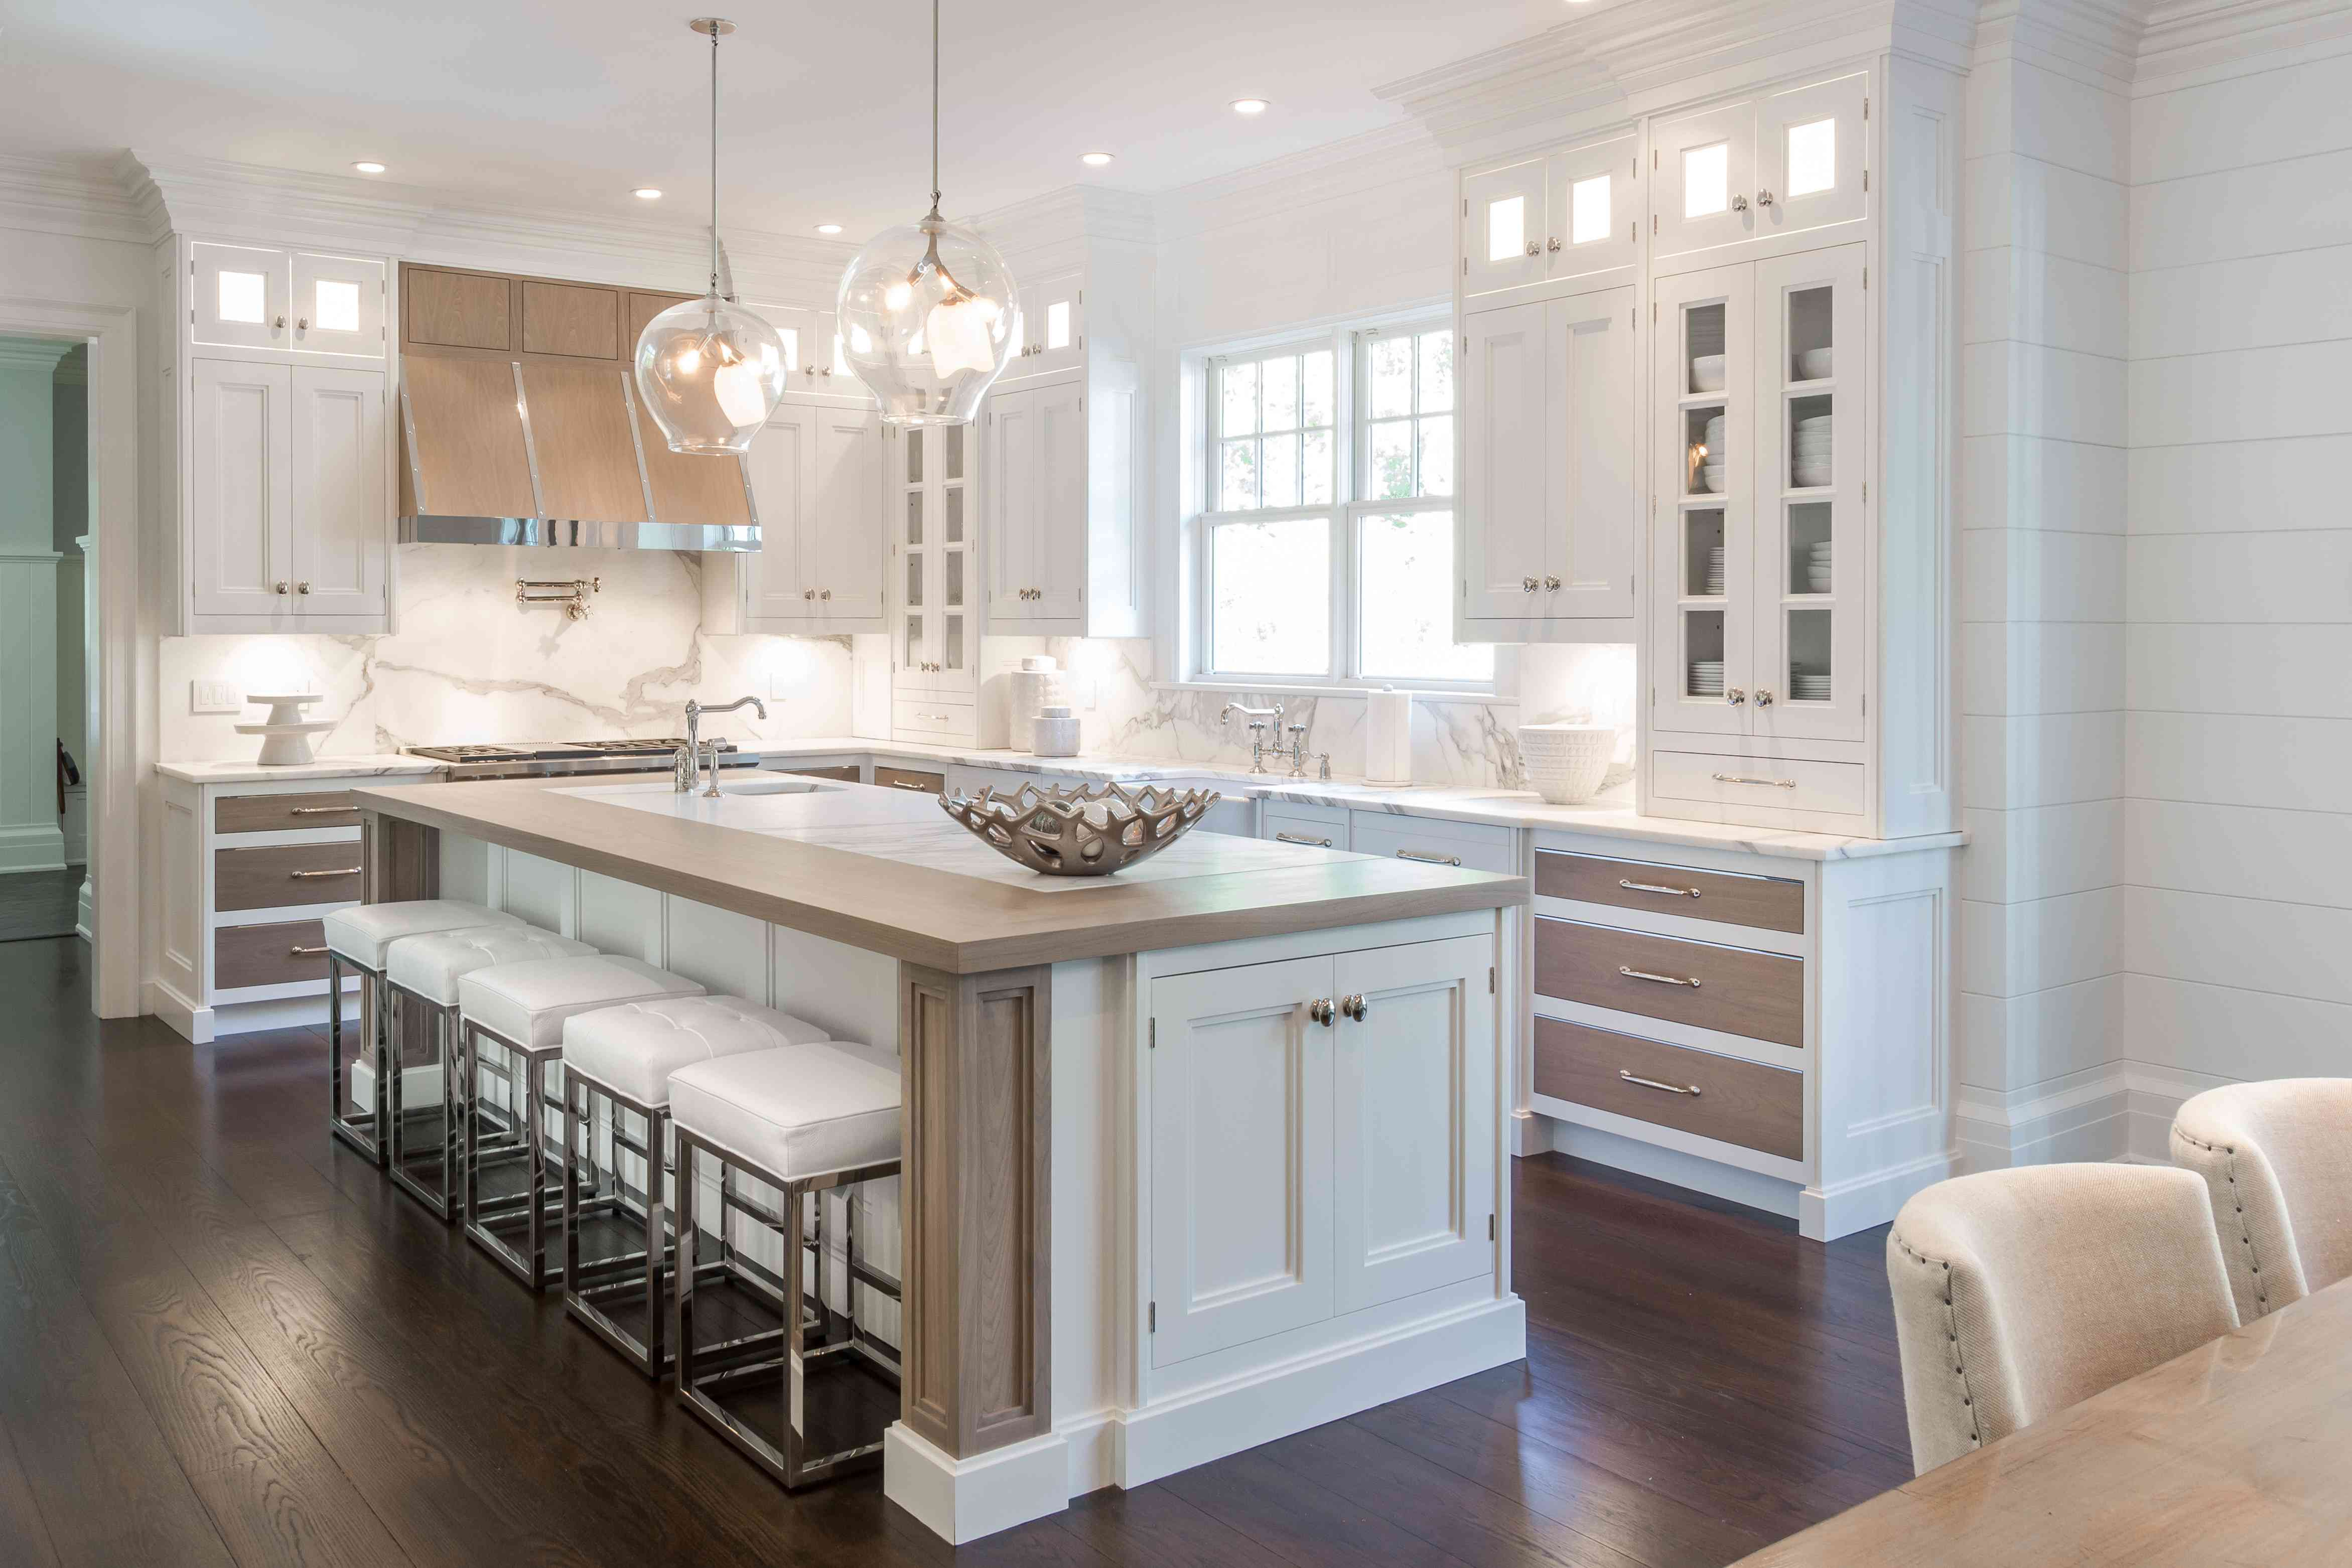 Kitchen without triangle rule by Bakes & Kropp